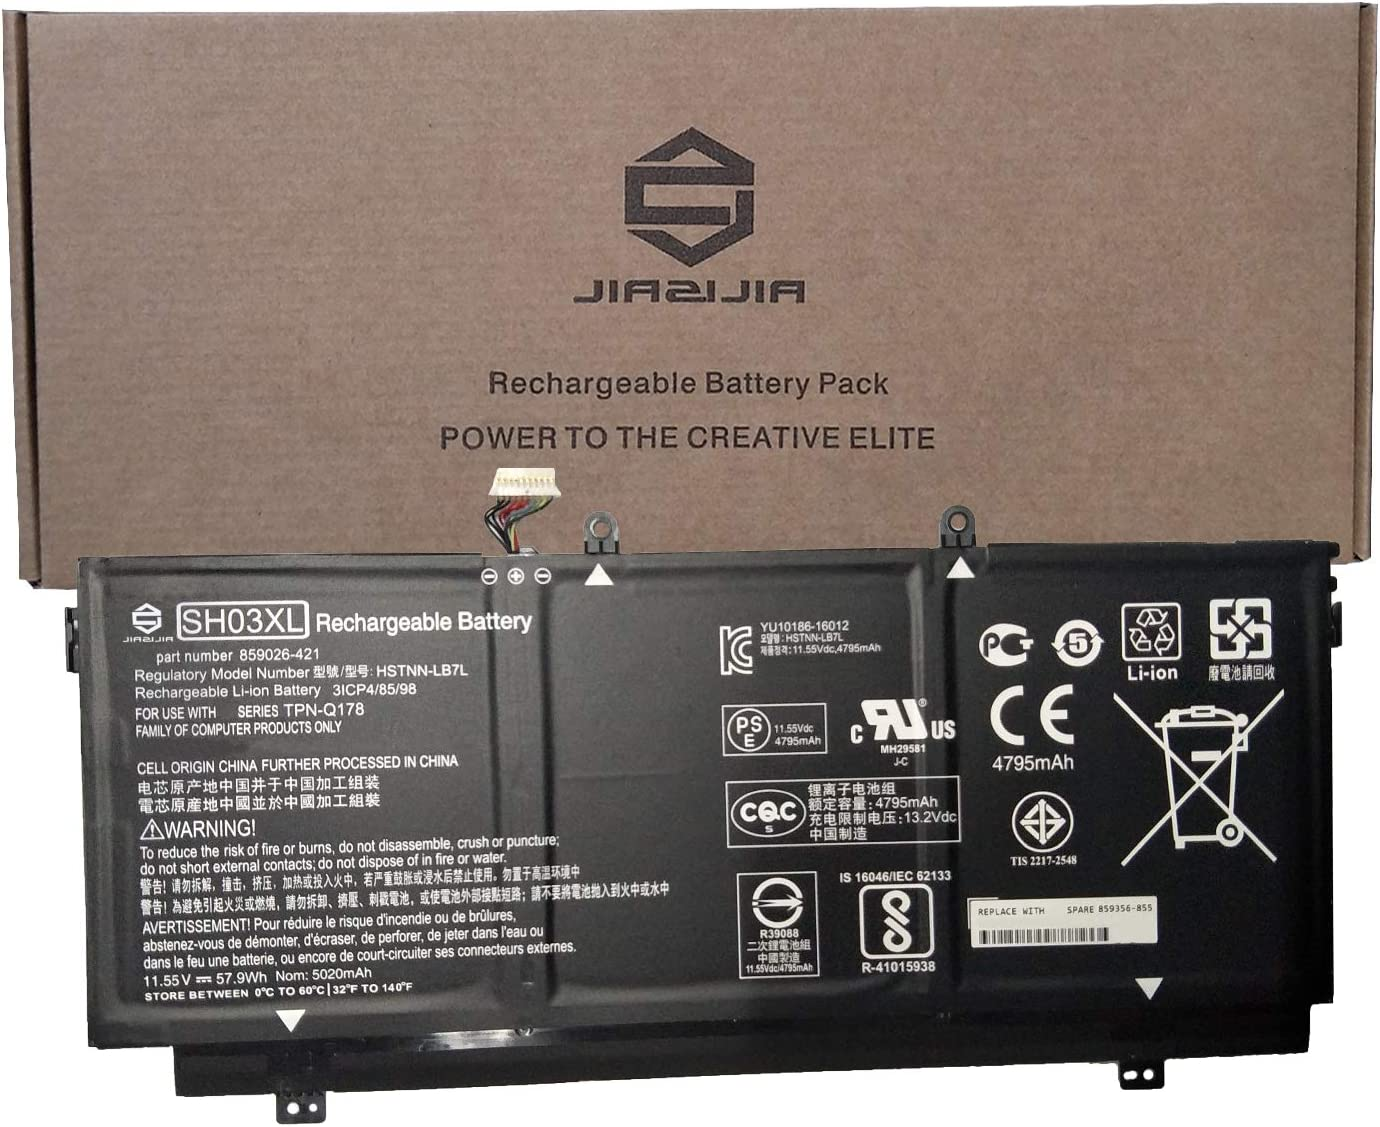 JIAZIJIA SH03XL Laptop Battery Replacement for Hp Spectre X360 13-AC033DX 13-W002NG 13-W003NG 13-W013DX 13-W023DX 13-W031NG 13-W033NG Series 859026-421 HSTNN-LB7L 859356-855 901345-855 11.55V 57.9Wh